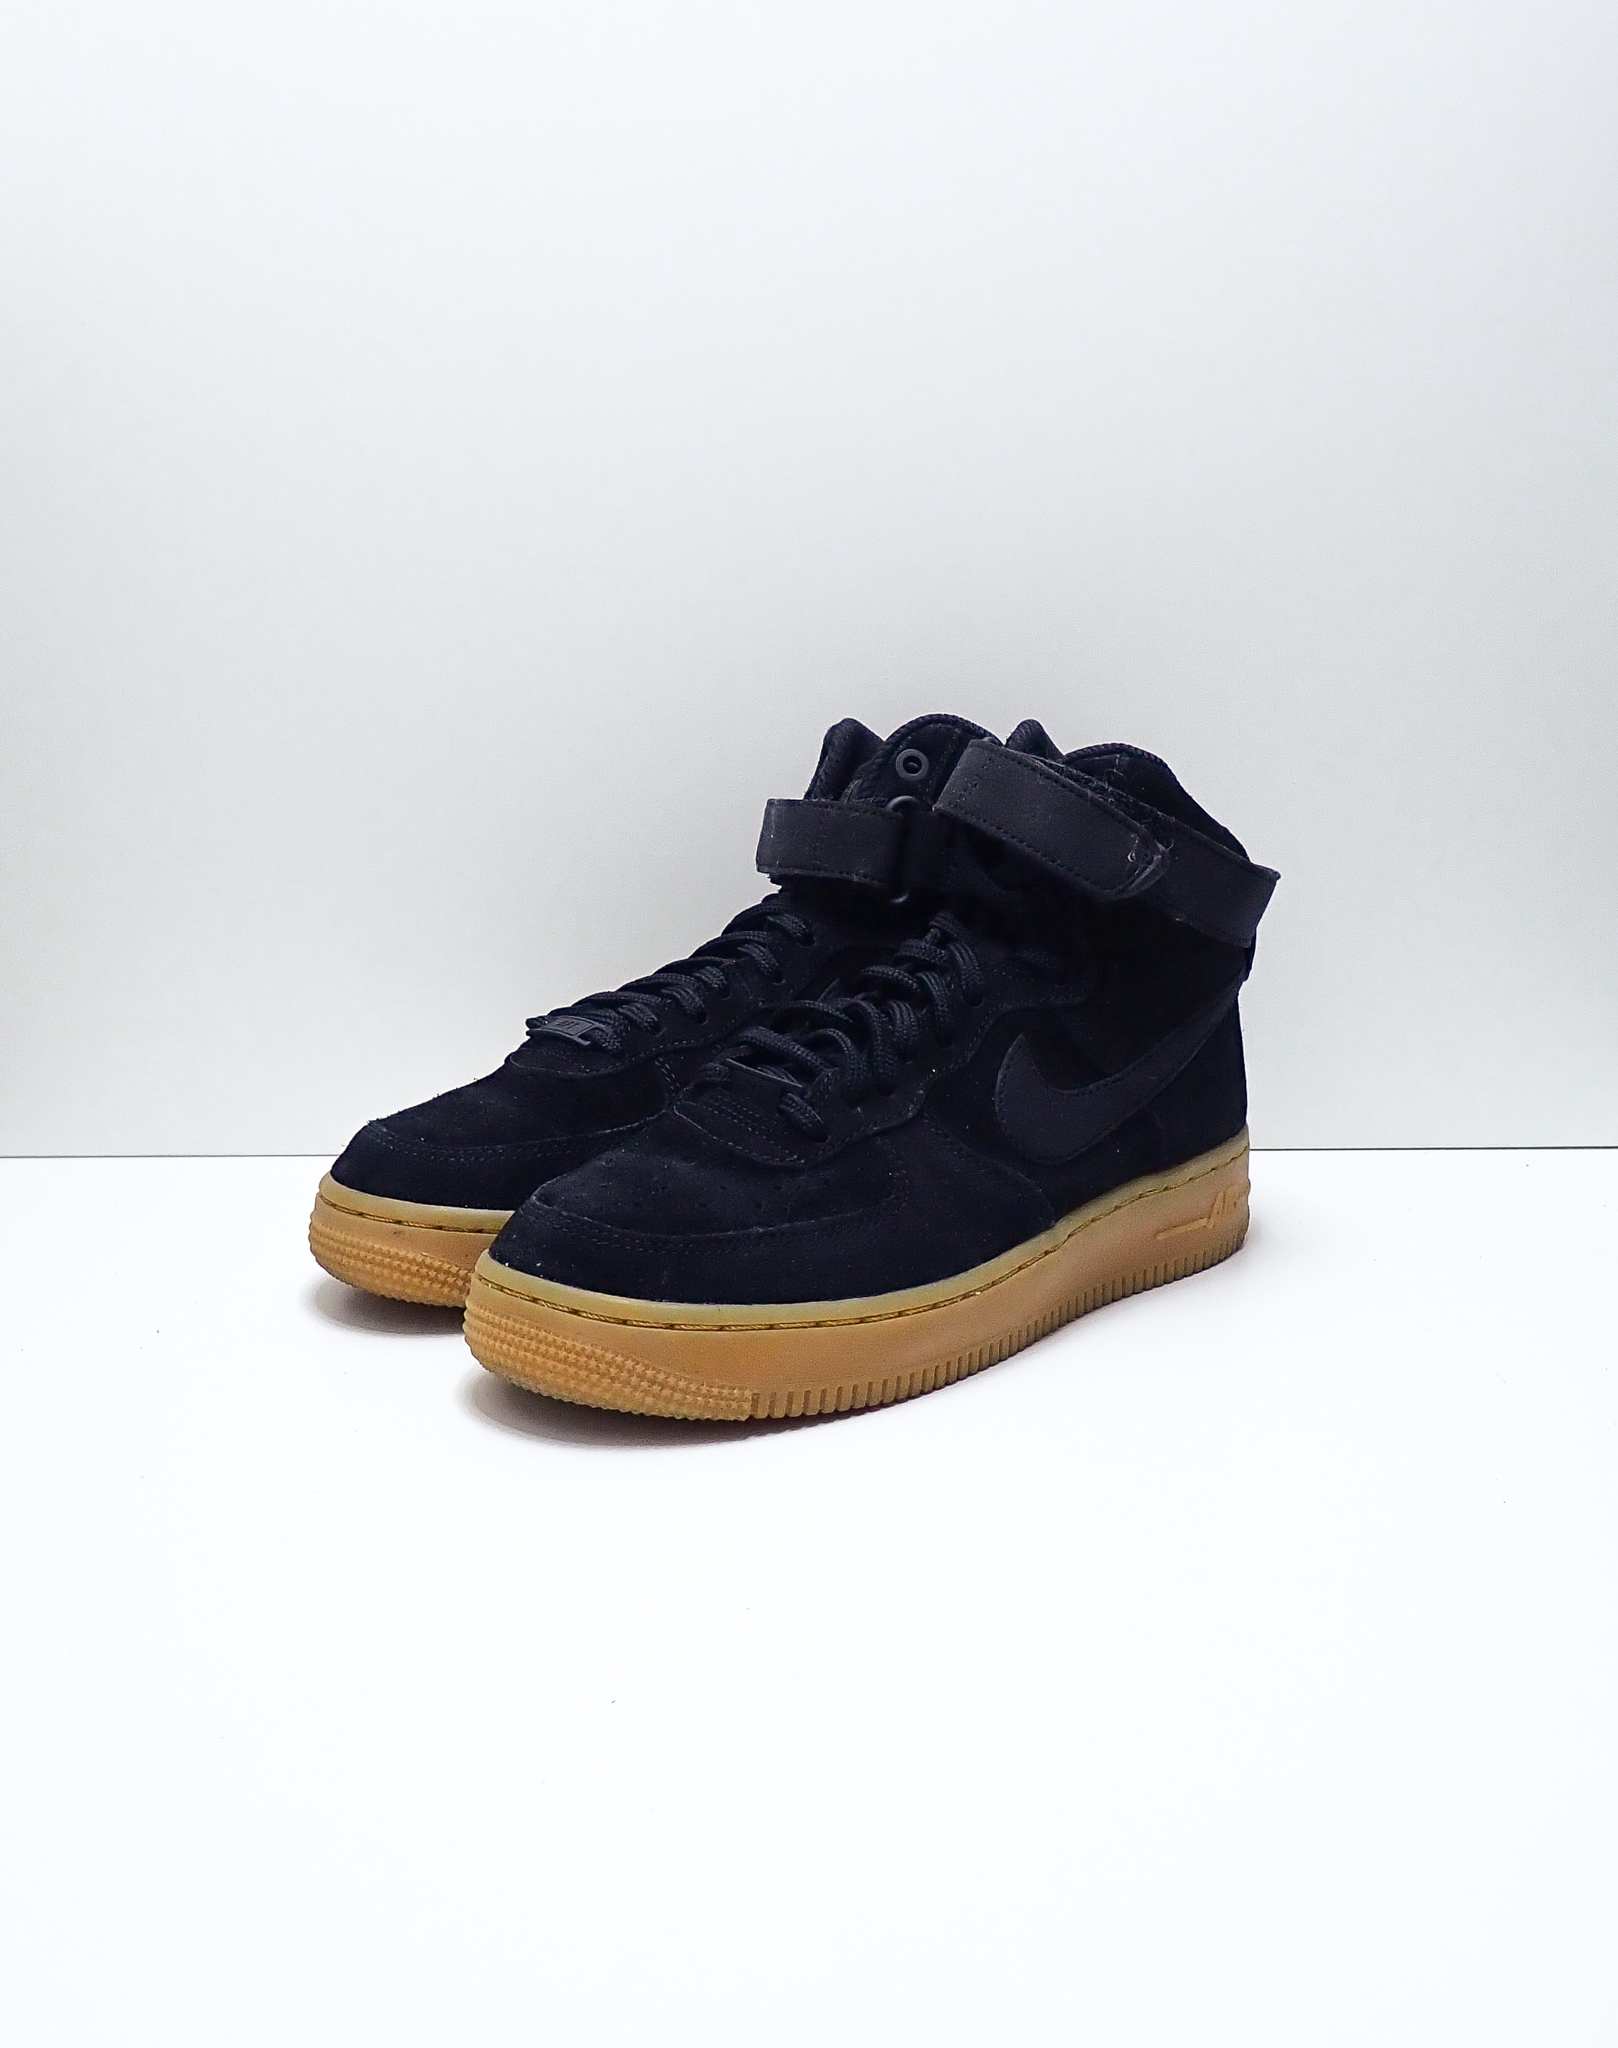 Nike Wmns Air Force 1 High SE Black Gum